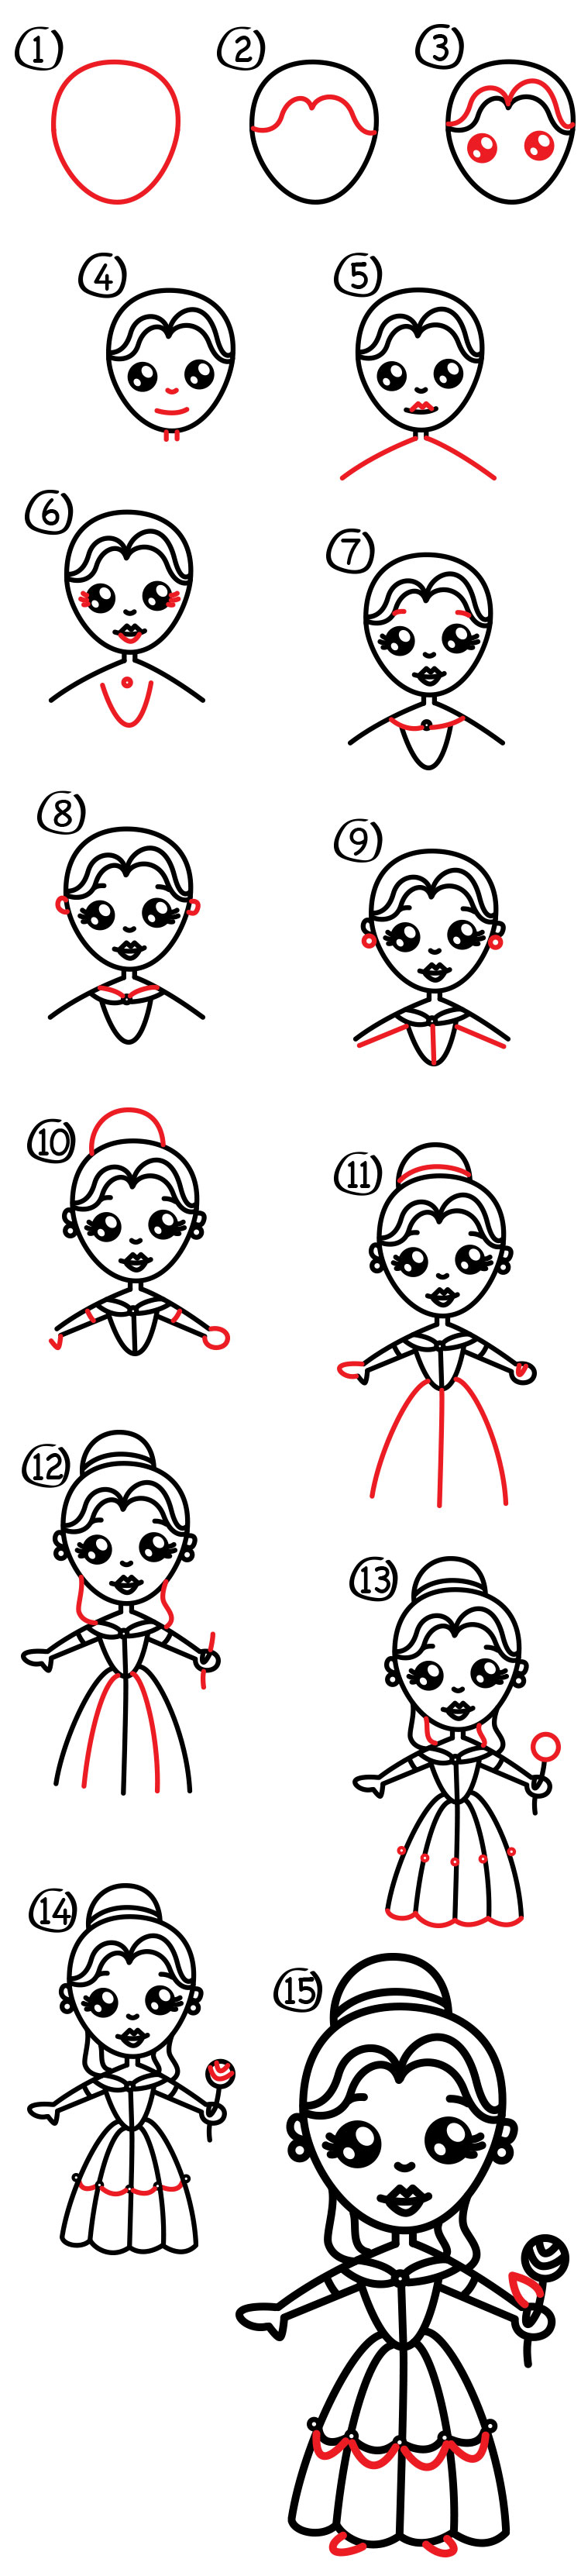 how to draw cartoon belle from disney beauty and the beast